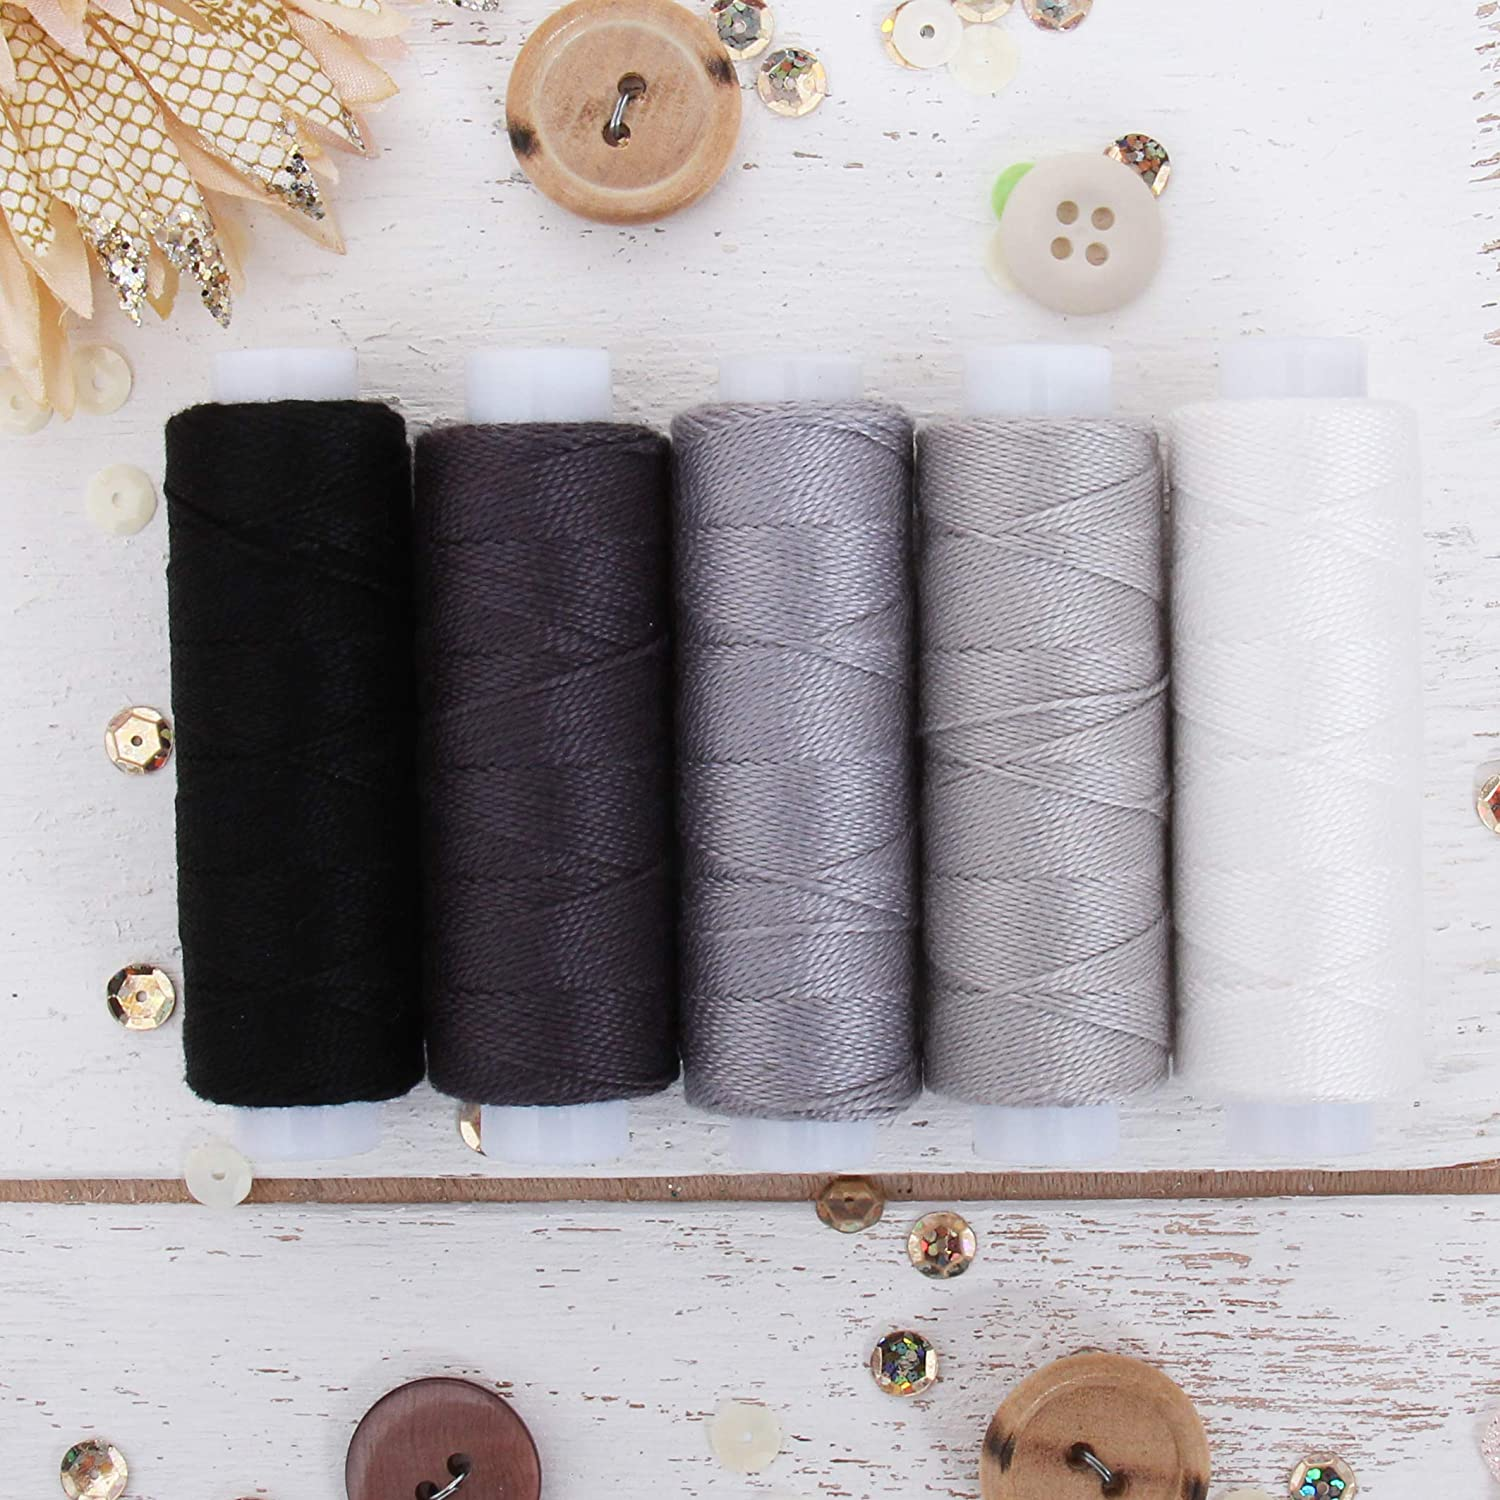 Threadart 5 Color Pearl Cotton Thread Set Grey Shades | 75yd Spools Size 8 | Perle Cotton for Friendship Bracelets, Crochet, Cross Stitch, Needlepoint, Hand Embroidery | 5 Grey Shades